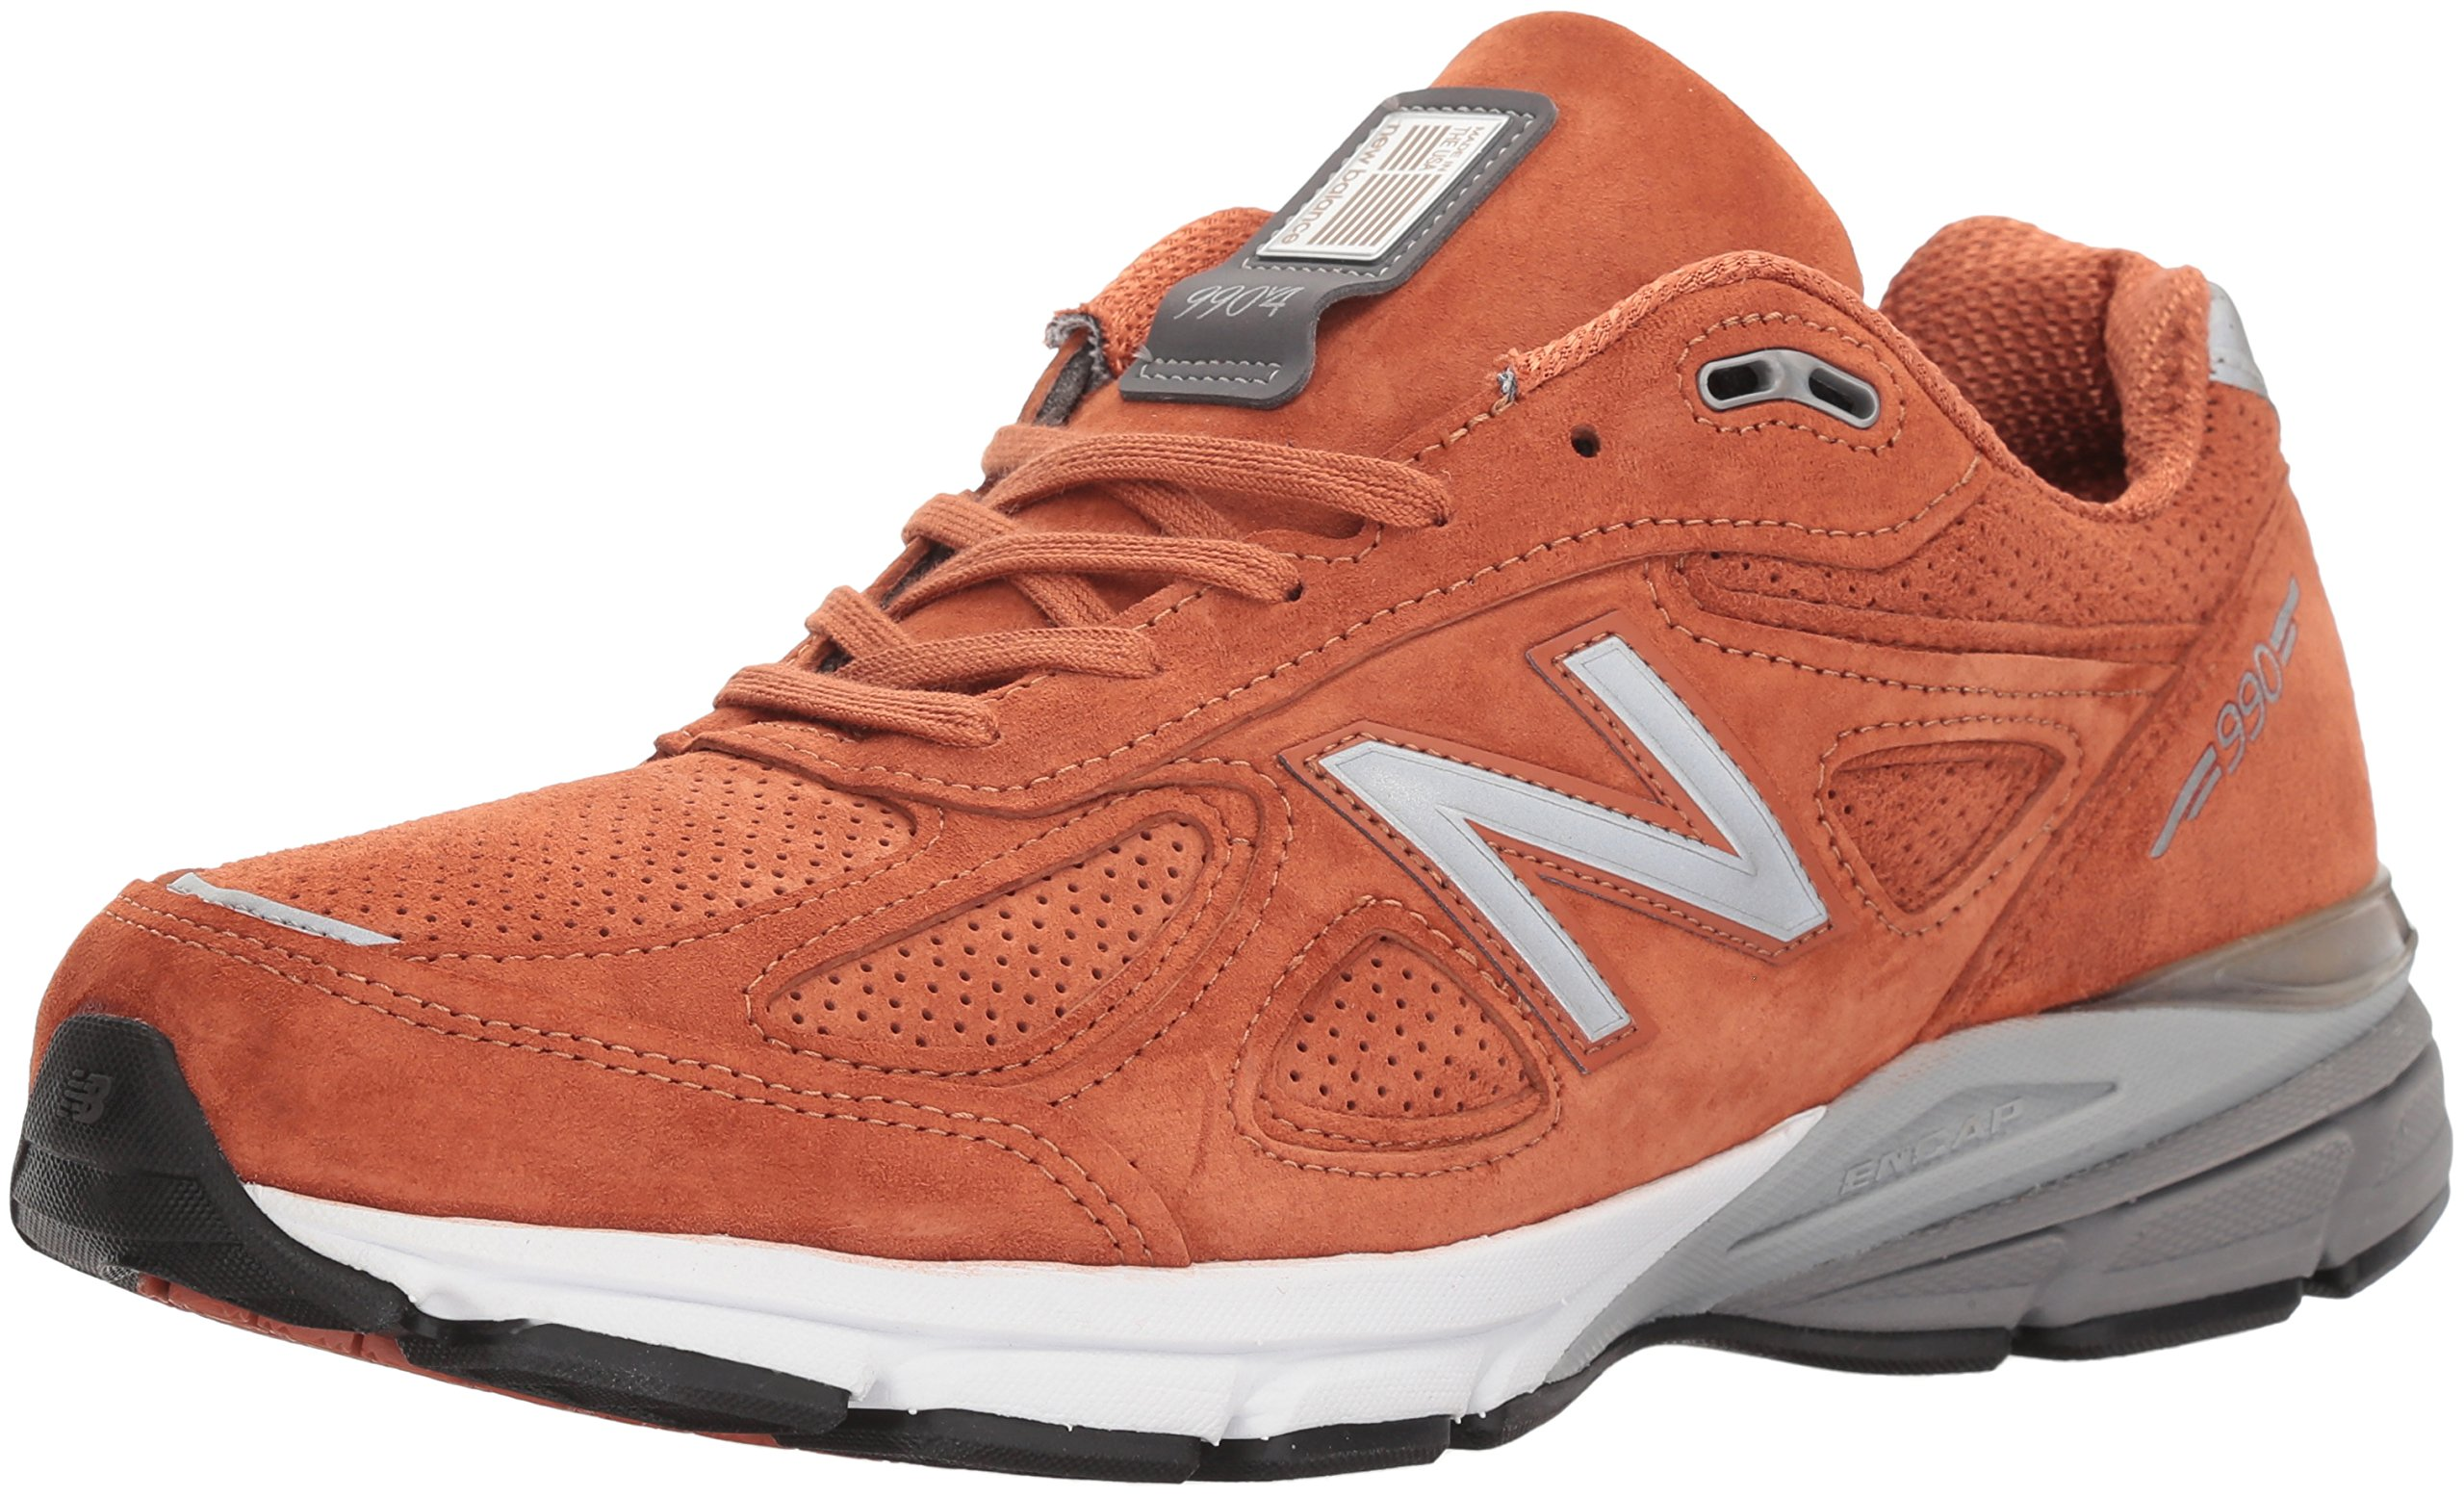 New Balance PERFRUN 990v4 Orange by New Balance